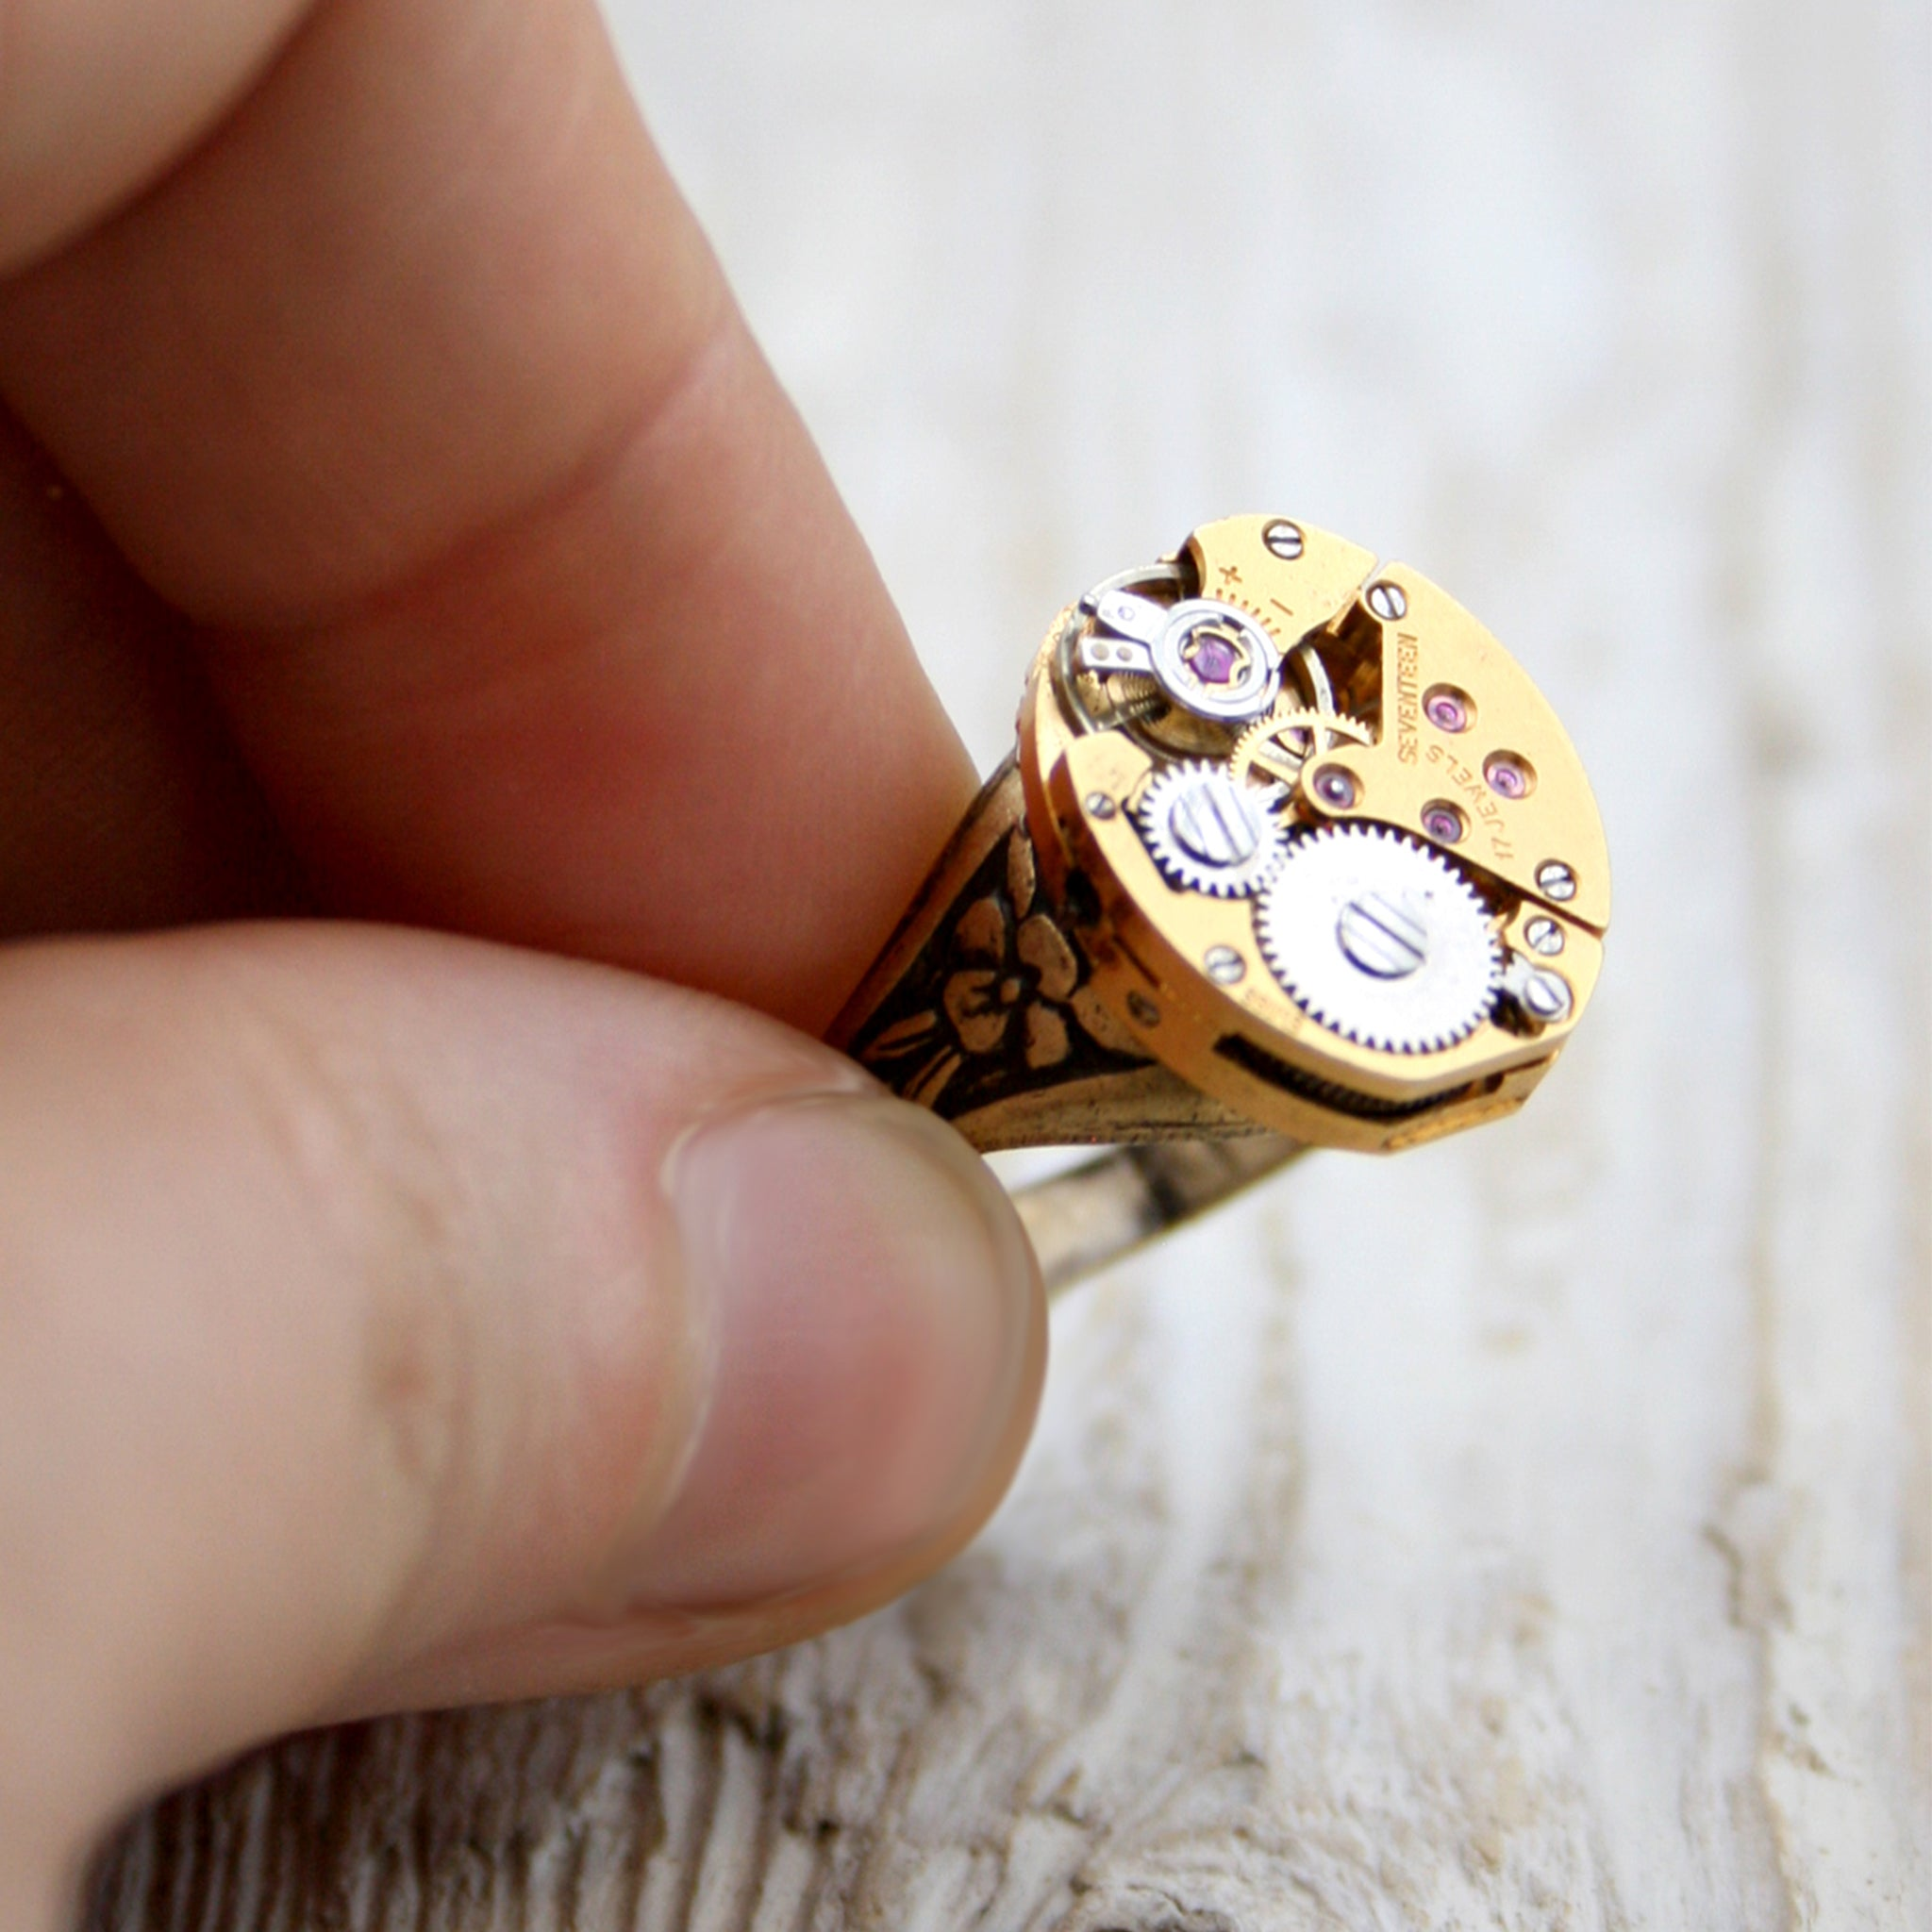 Gold Signet Pinky Ring in steampunk style made of watch inside